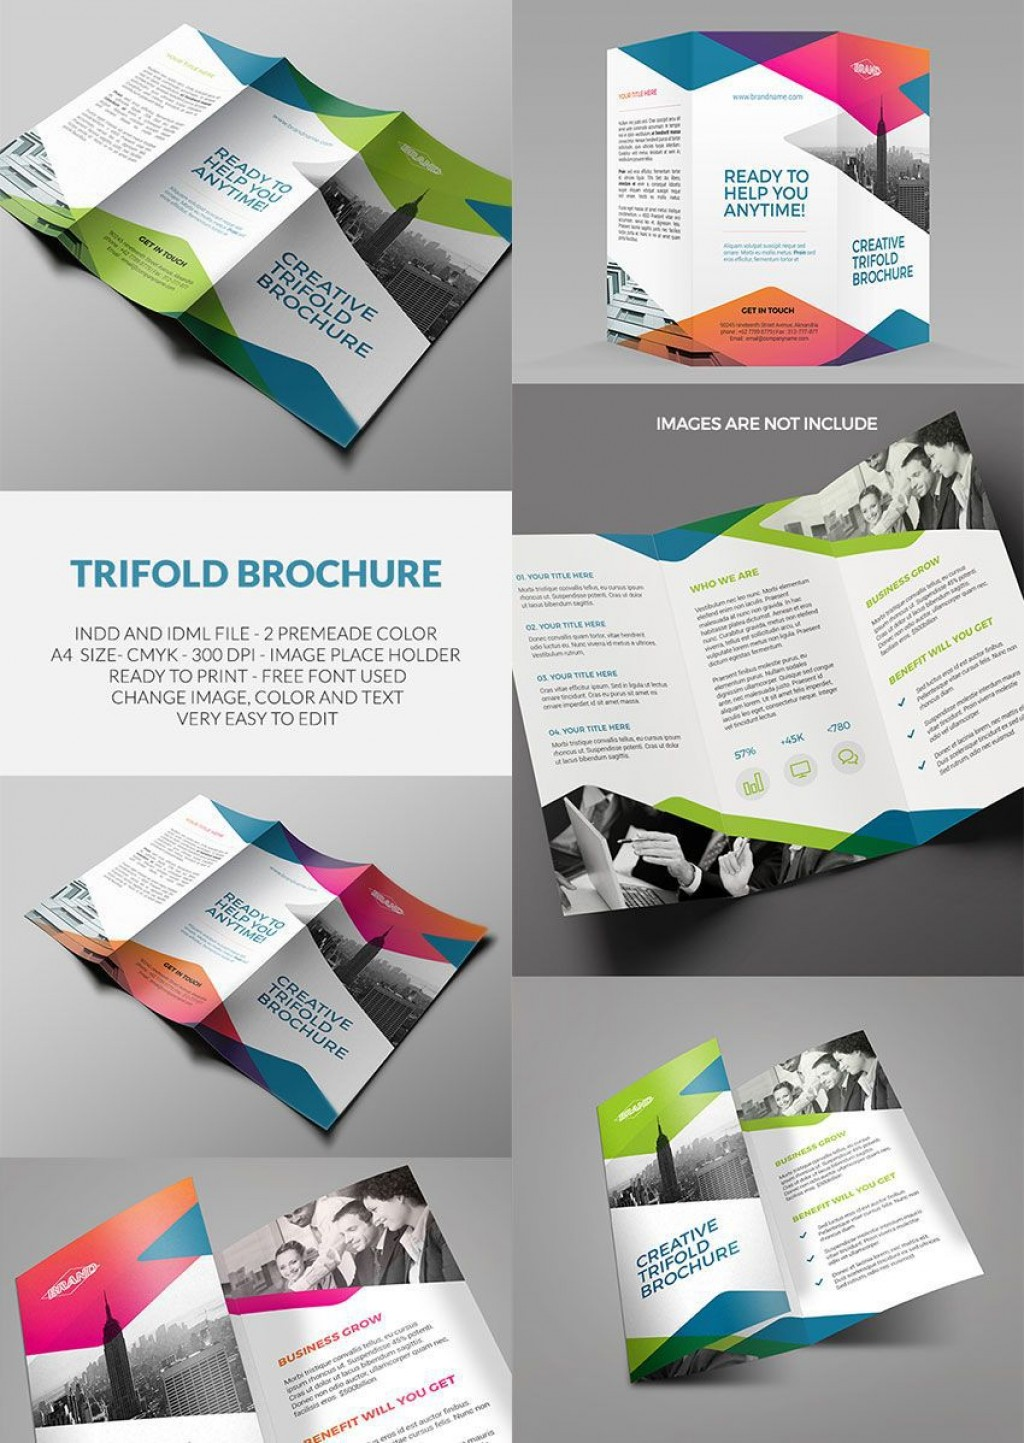 002 Outstanding Tri Fold Brochure Indesign Template Picture  Free AdobeLarge